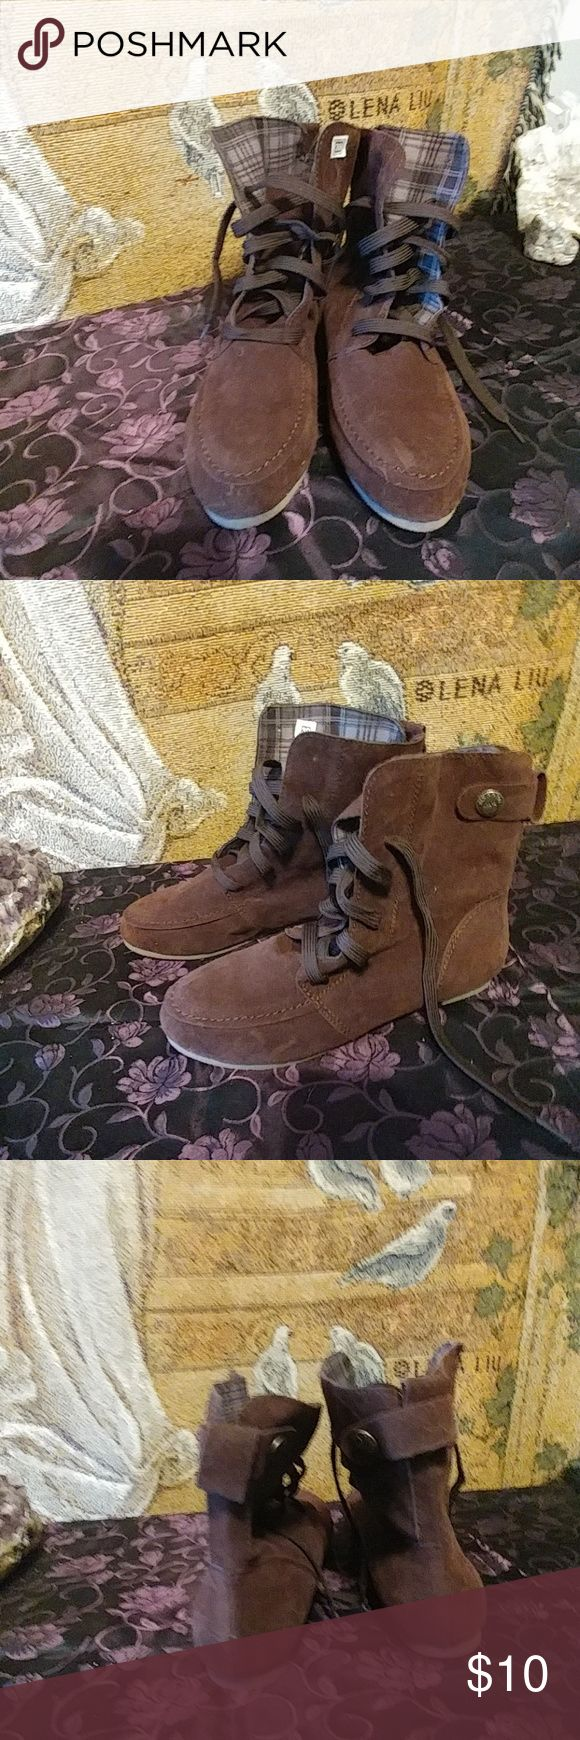 👢🆕 Ankle Boots👢 Brown Ankle Boots. Great for summer would look cute with shorts.   Really cute.  I bought them never wore them.  Flat sole.  No brand name I can see.  The size sticker us still inside .  So is the paper from packaging.   ⭐PLEASE READ BELOW FOR SIZING. ⭐  ⭐⭐⭐Their makes as a Euro 39 meaning size 9  These are not true to size. Their more of a Euro 37  Meaning size 7.  I'm guessing these were a size up shoe to fit right . I can't remember. ⭐⭐⭐⭐   ❎No Trades ❎No Lowballers…